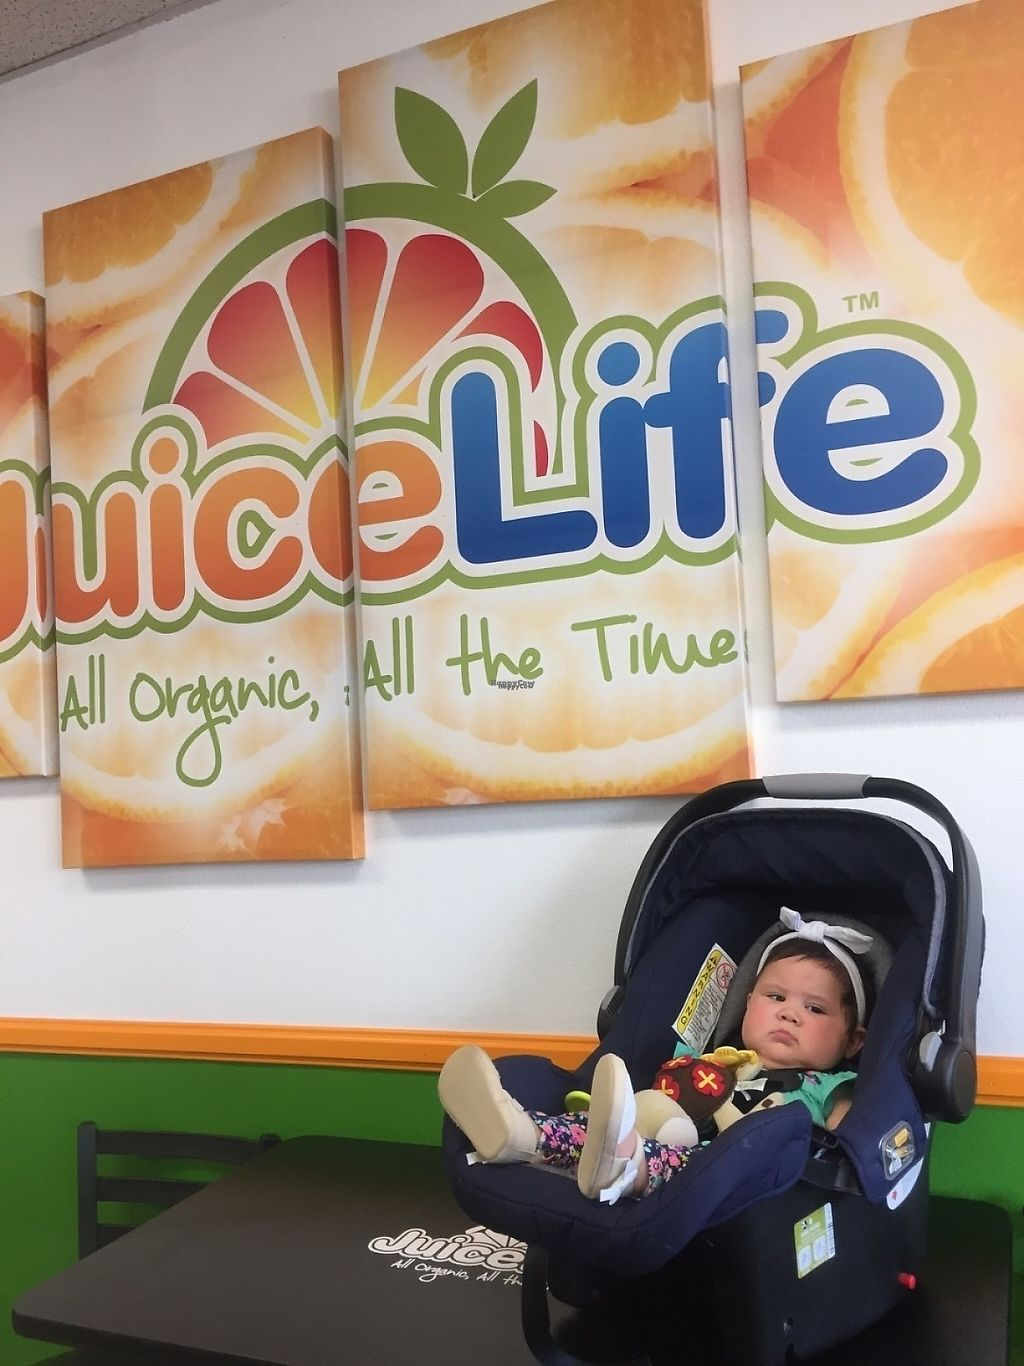 """Photo of Juice Life   by <a href=""""/members/profile/JaviGGutierrez"""">JaviGGutierrez</a> <br/>Baby's love Juice life <br/> March 16, 2017  - <a href='/contact/abuse/image/88763/237131'>Report</a>"""